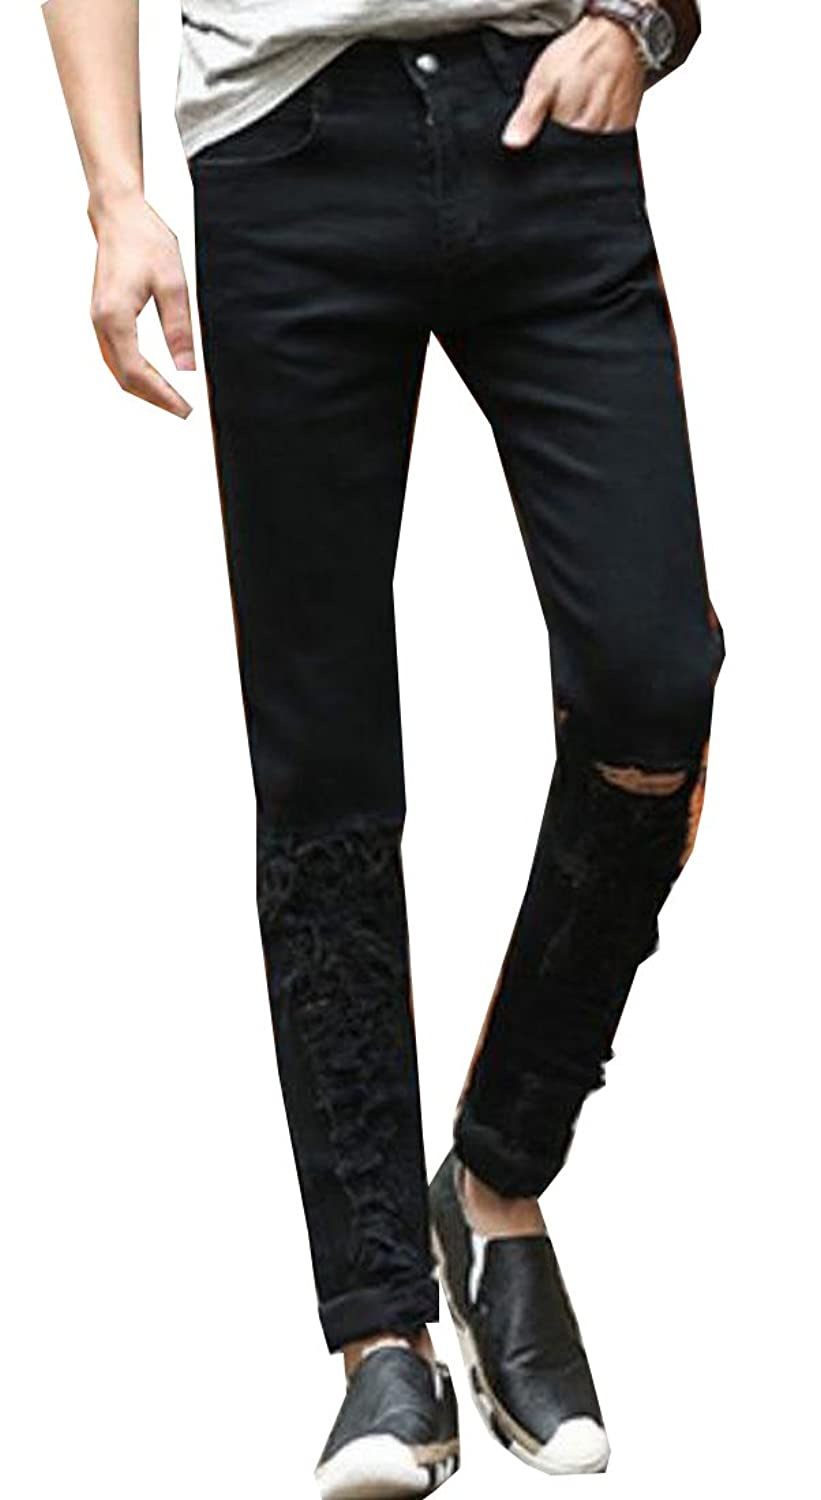 NQ Men's Denim Broken Hole Slim Comfort Regular-Fit Stylish Washed Pants